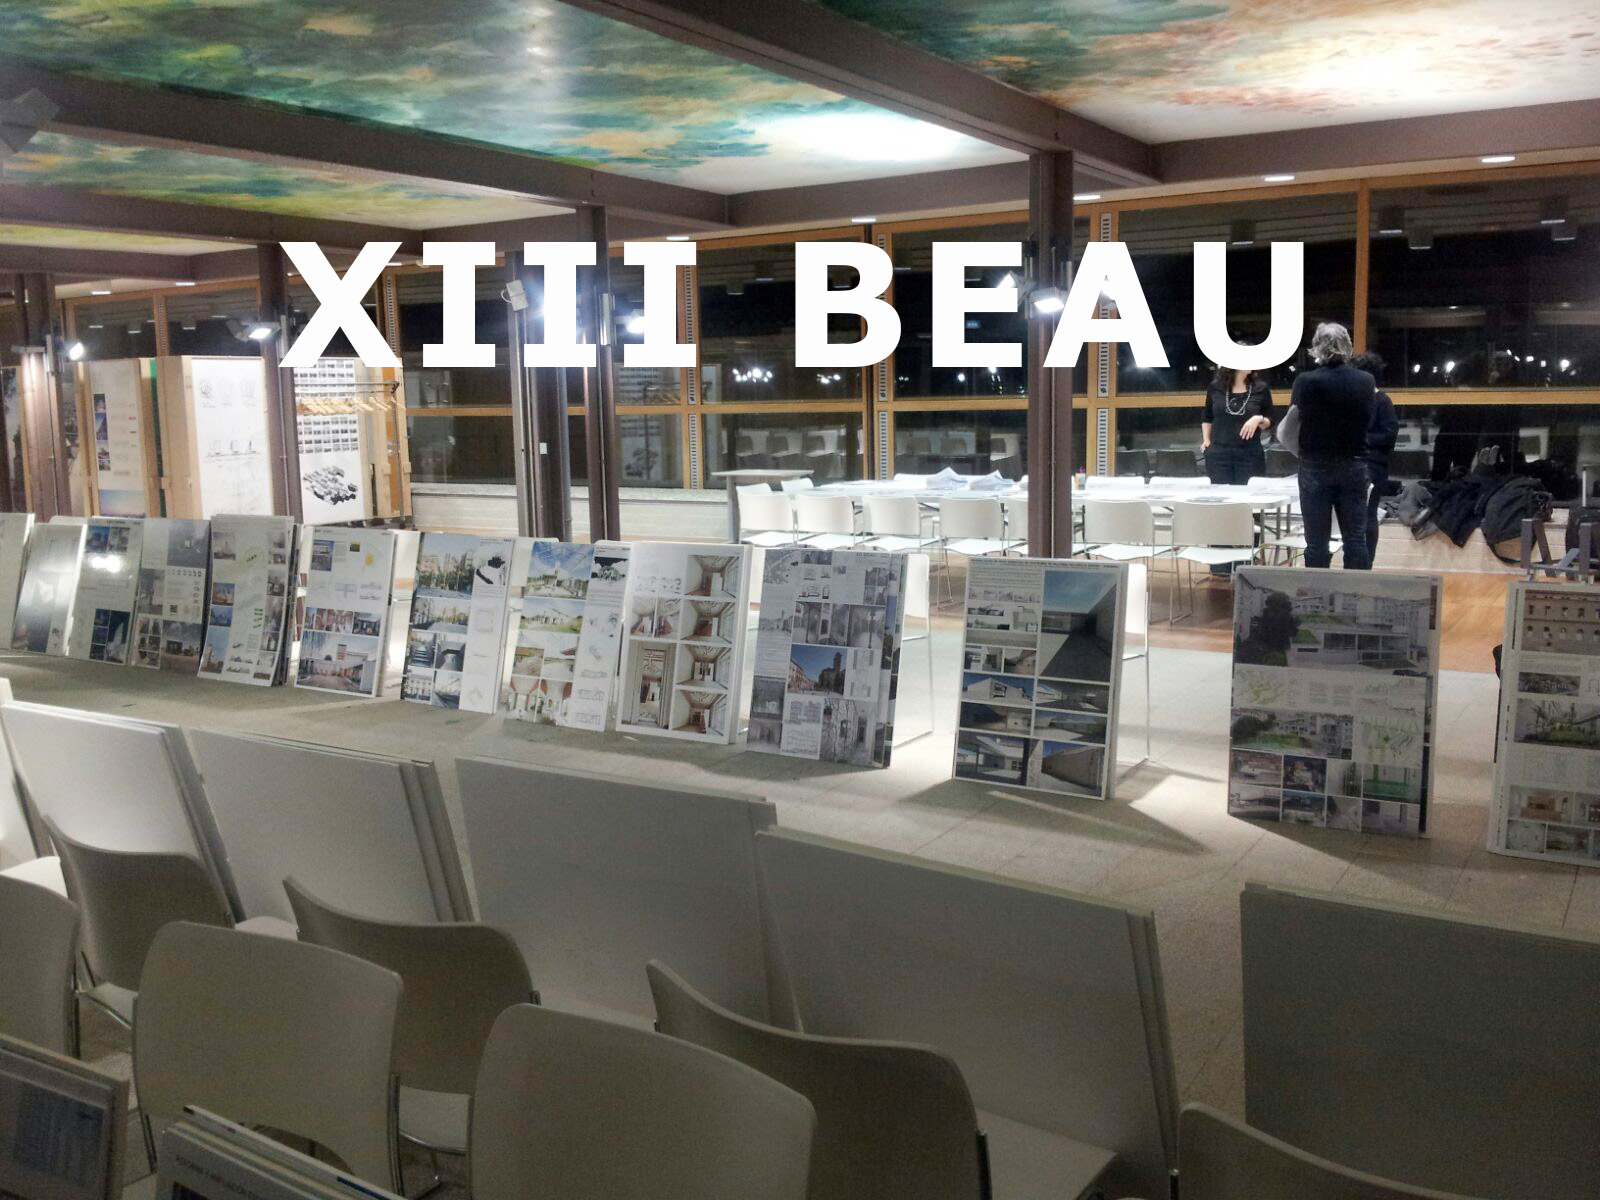 22 awarded projects by XIII BEAU